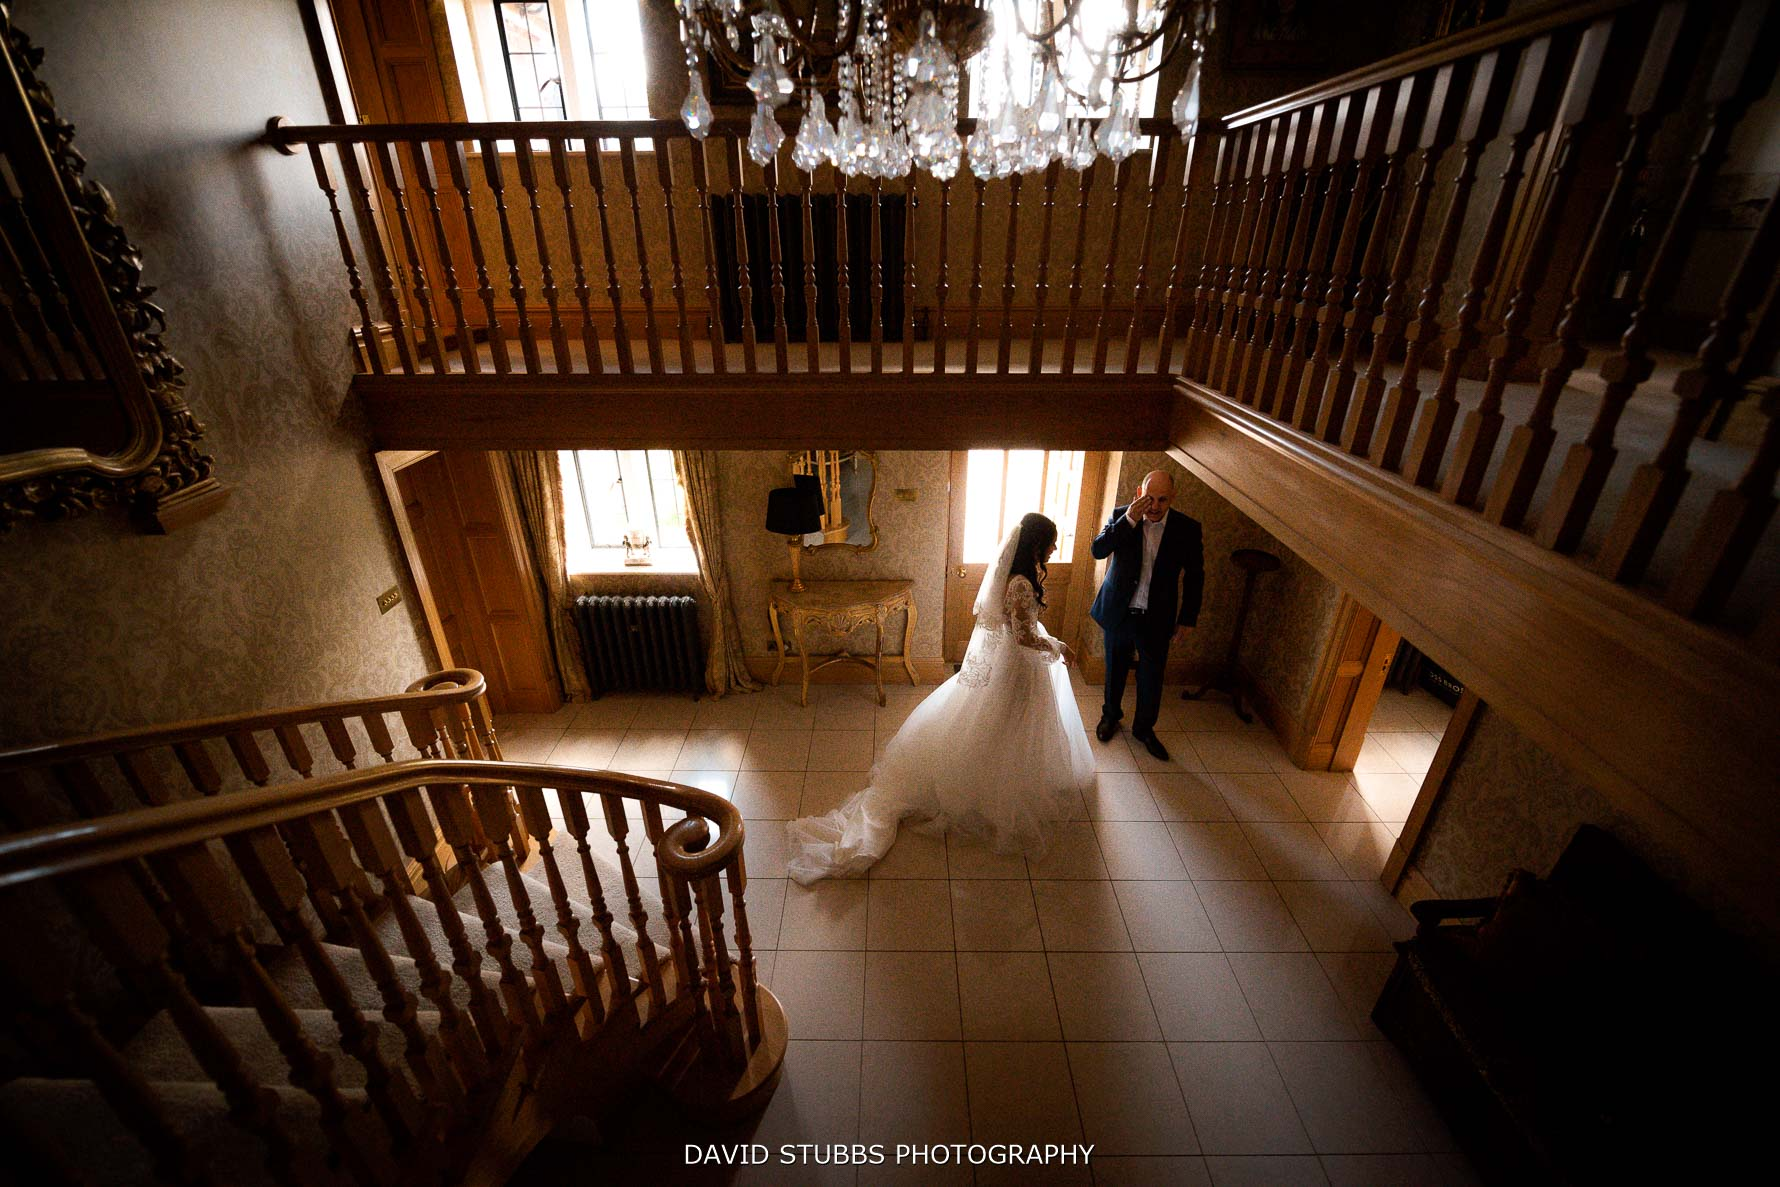 wide angle shot of the bridal suite at merry dale manor